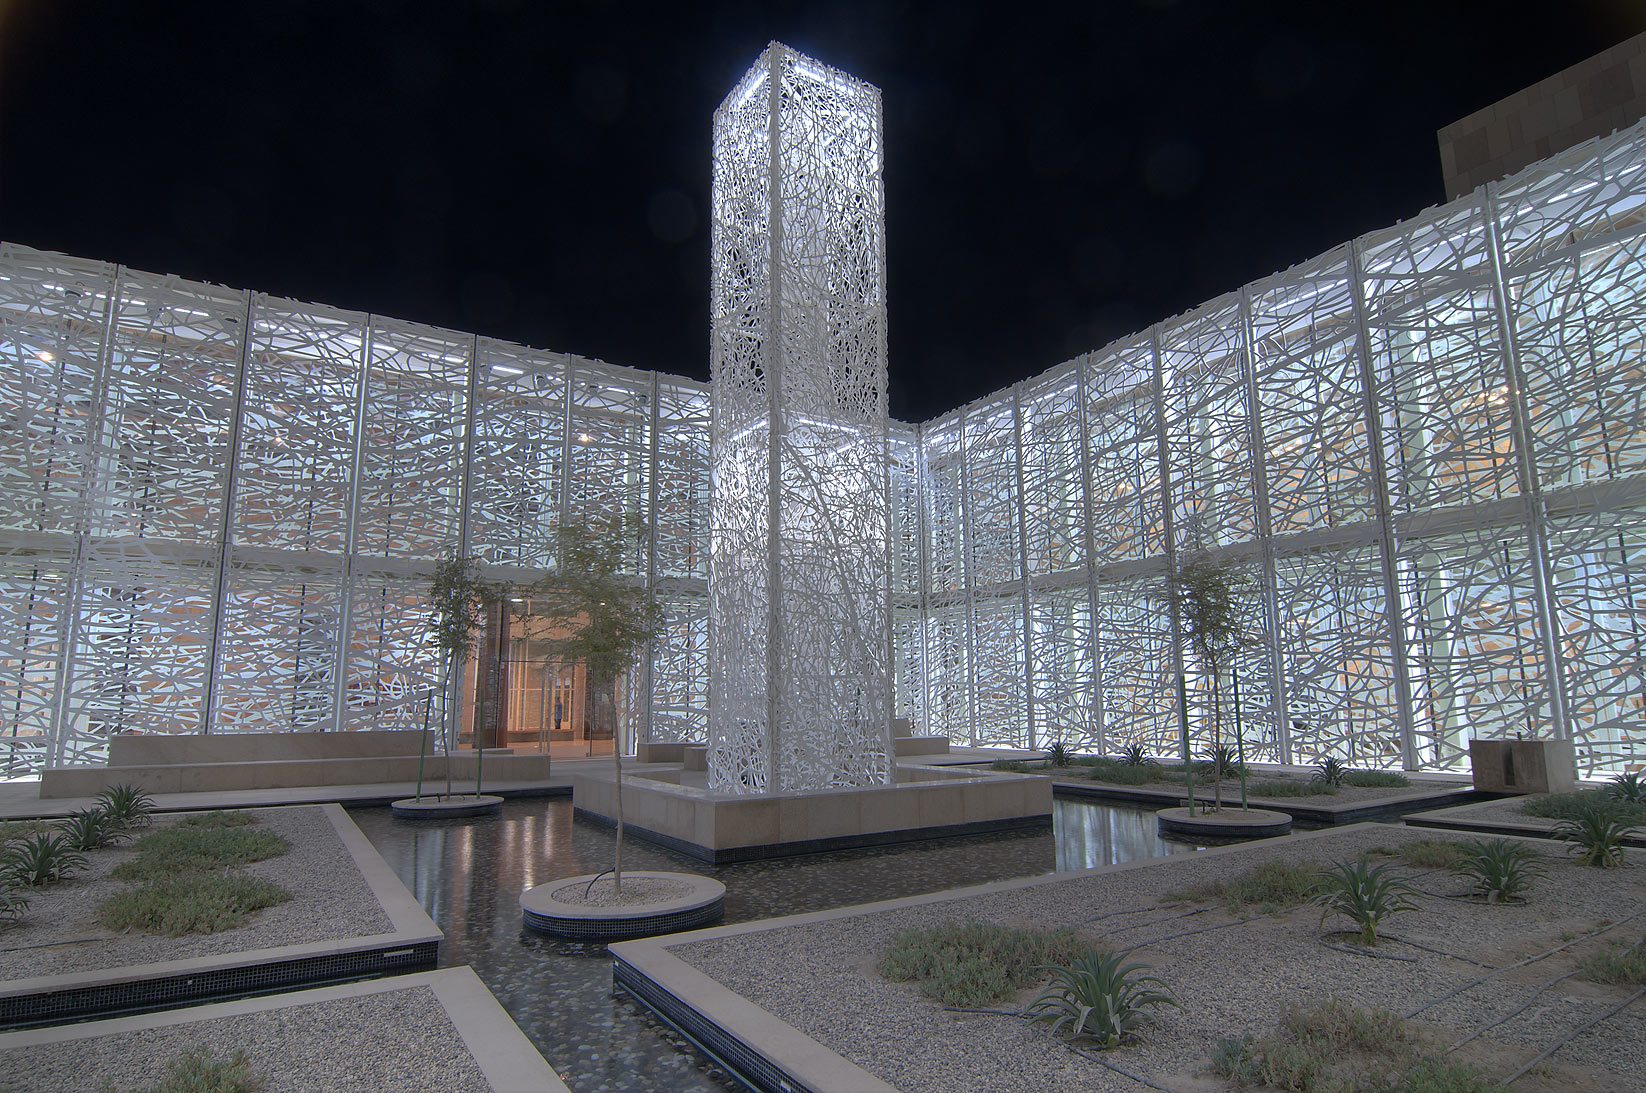 Lighted Sculpture Garden by Jan Hendrix in a...in Education City campus. Doha, Qatar